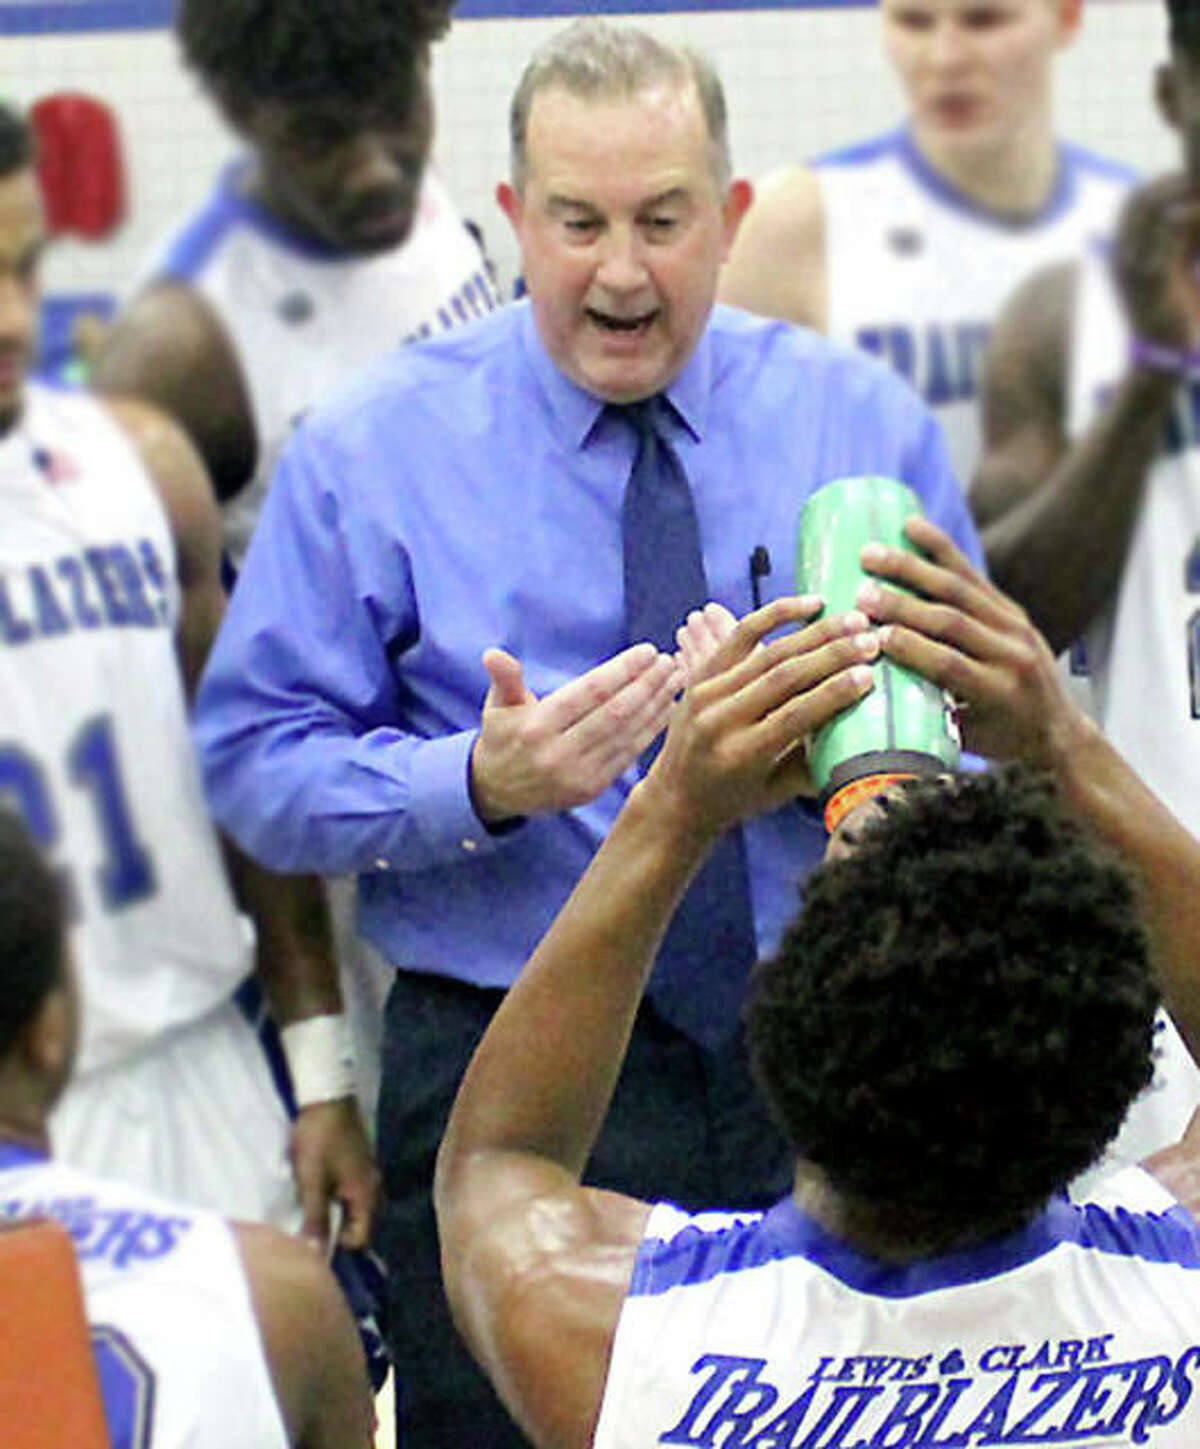 LCCC men's basketball coach Doug Stotler speaks to his team during a timeout against Wabash Valley.